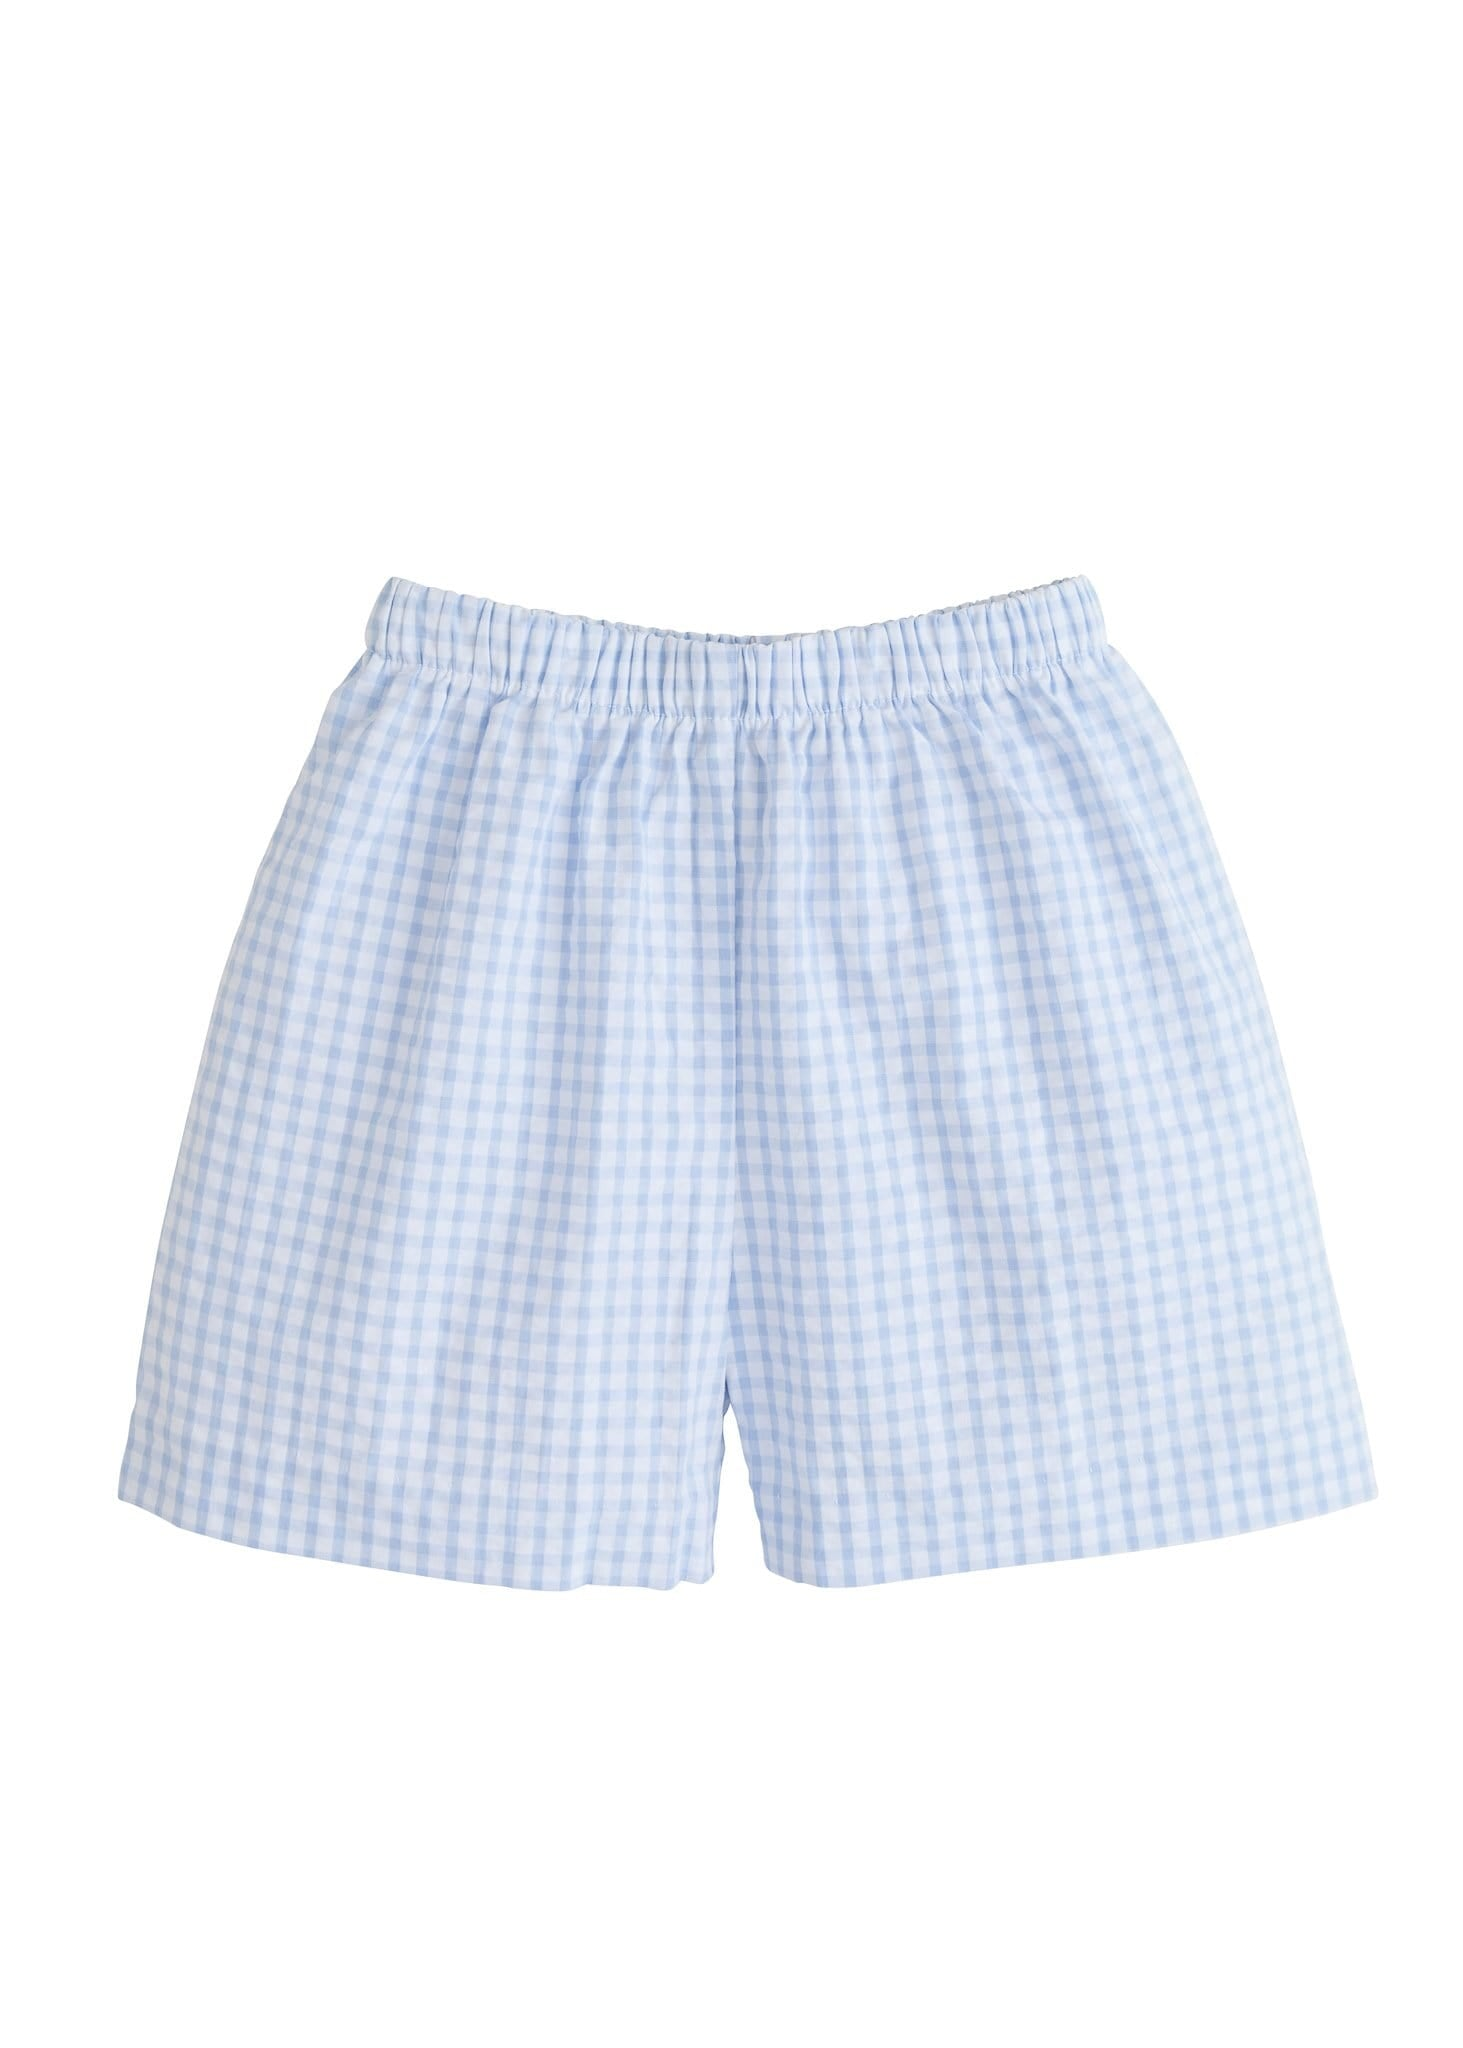 Basic Short - Light Blue Gingham, Little English, classic children's clothing, preppy children's clothing, traditional children's clothing, classic baby clothing, traditional baby clothing